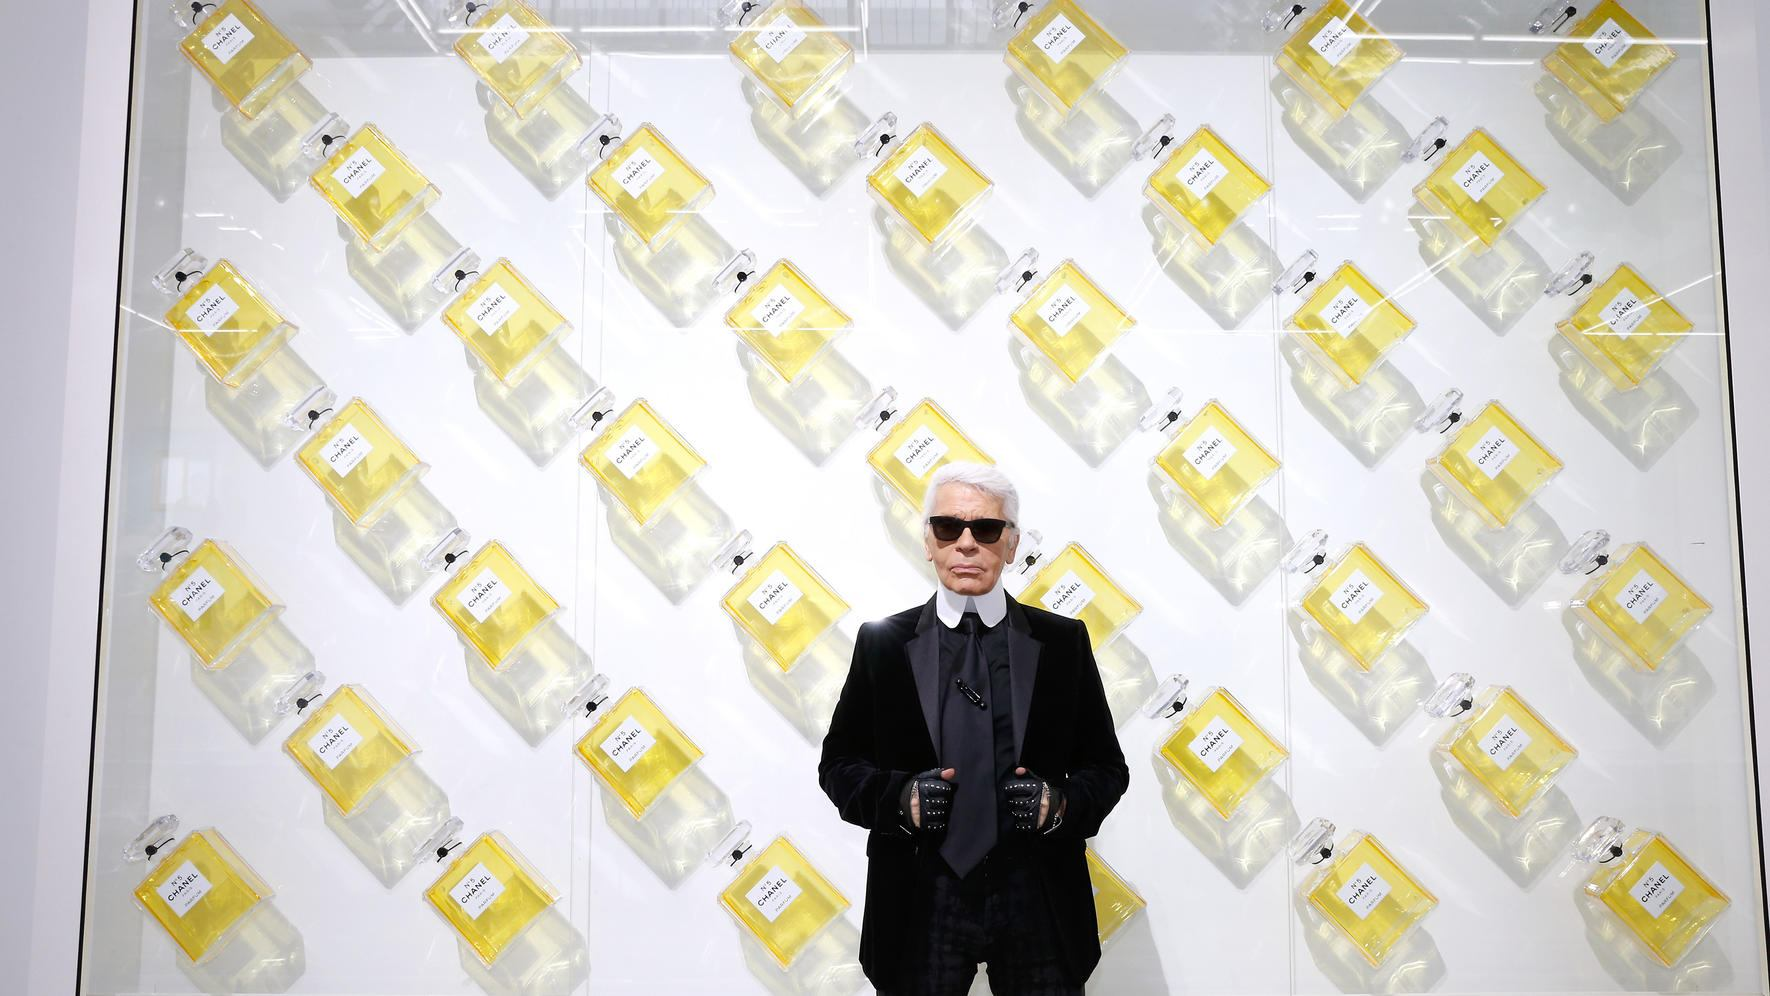 PARIS, FRANCE - OCTOBER 01:  (EDITORS NOTE: This image has been retouched) Fashion designer Karl Lagerfeld poses in front of his works before the Chanel show as part of the Paris Fashion Week Womenswear  Spring/Summer 2014, held at Grand Palais on October 1, 2013 in Paris, France.  (Photo by Bertrand Rindoff Petroff/Getty Images)